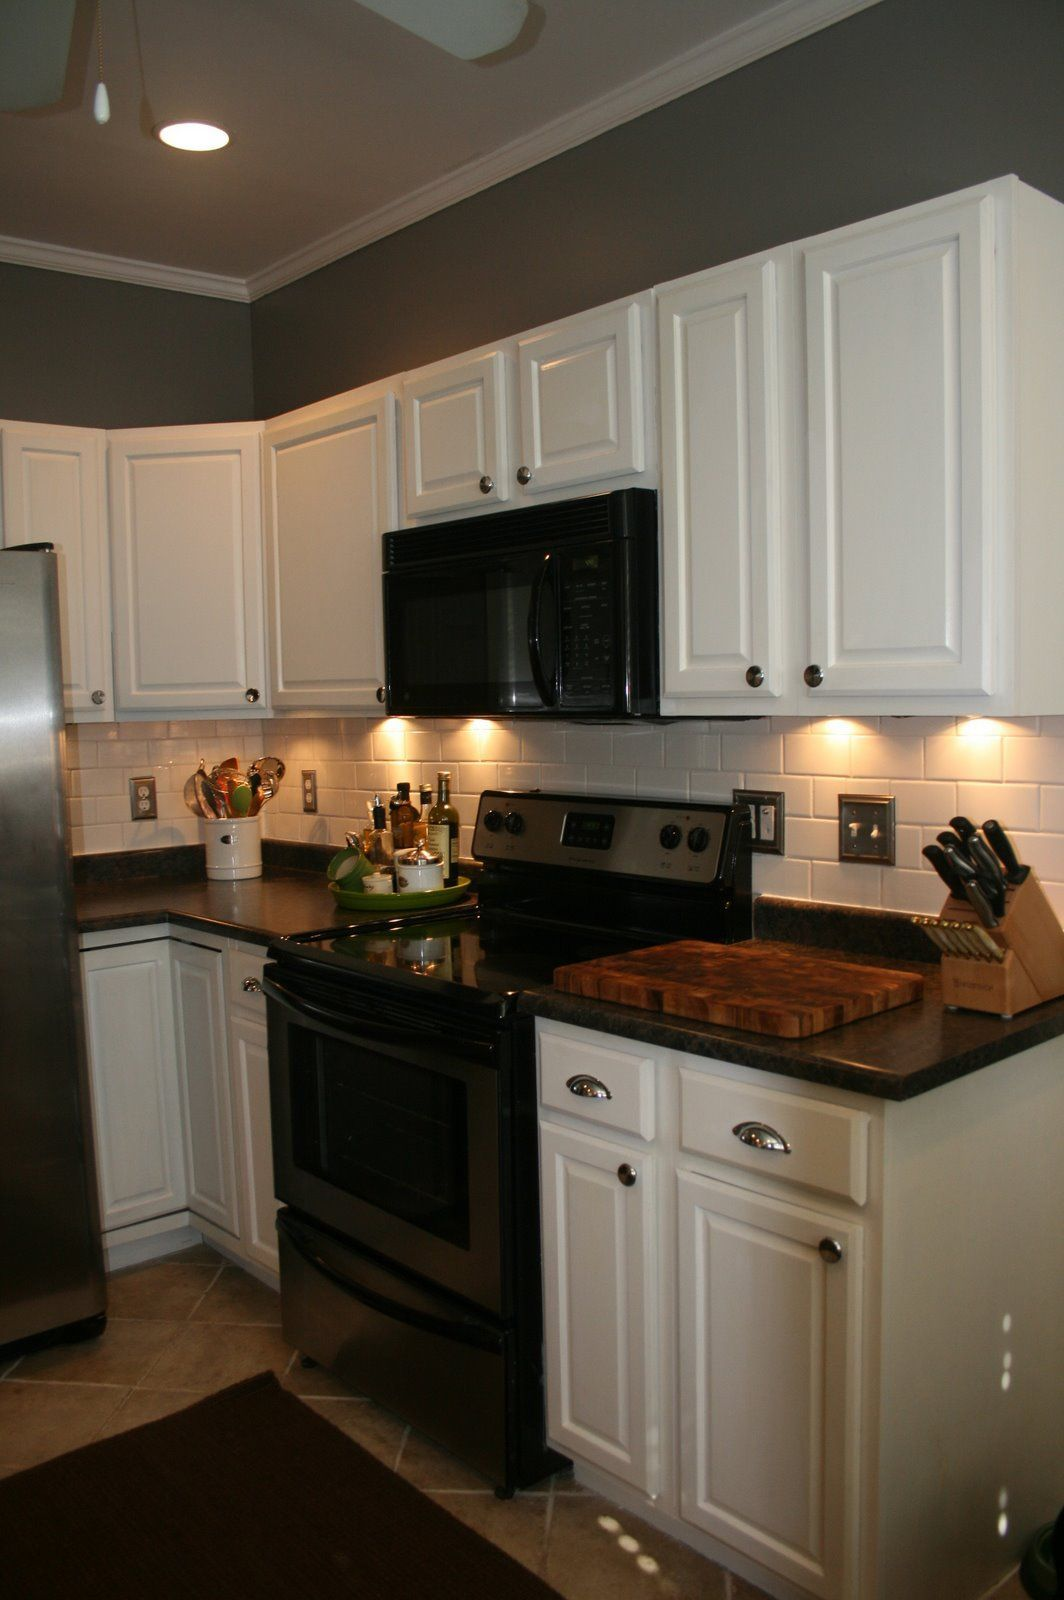 Paint oak cabinets white i donut usually like white cabinets but